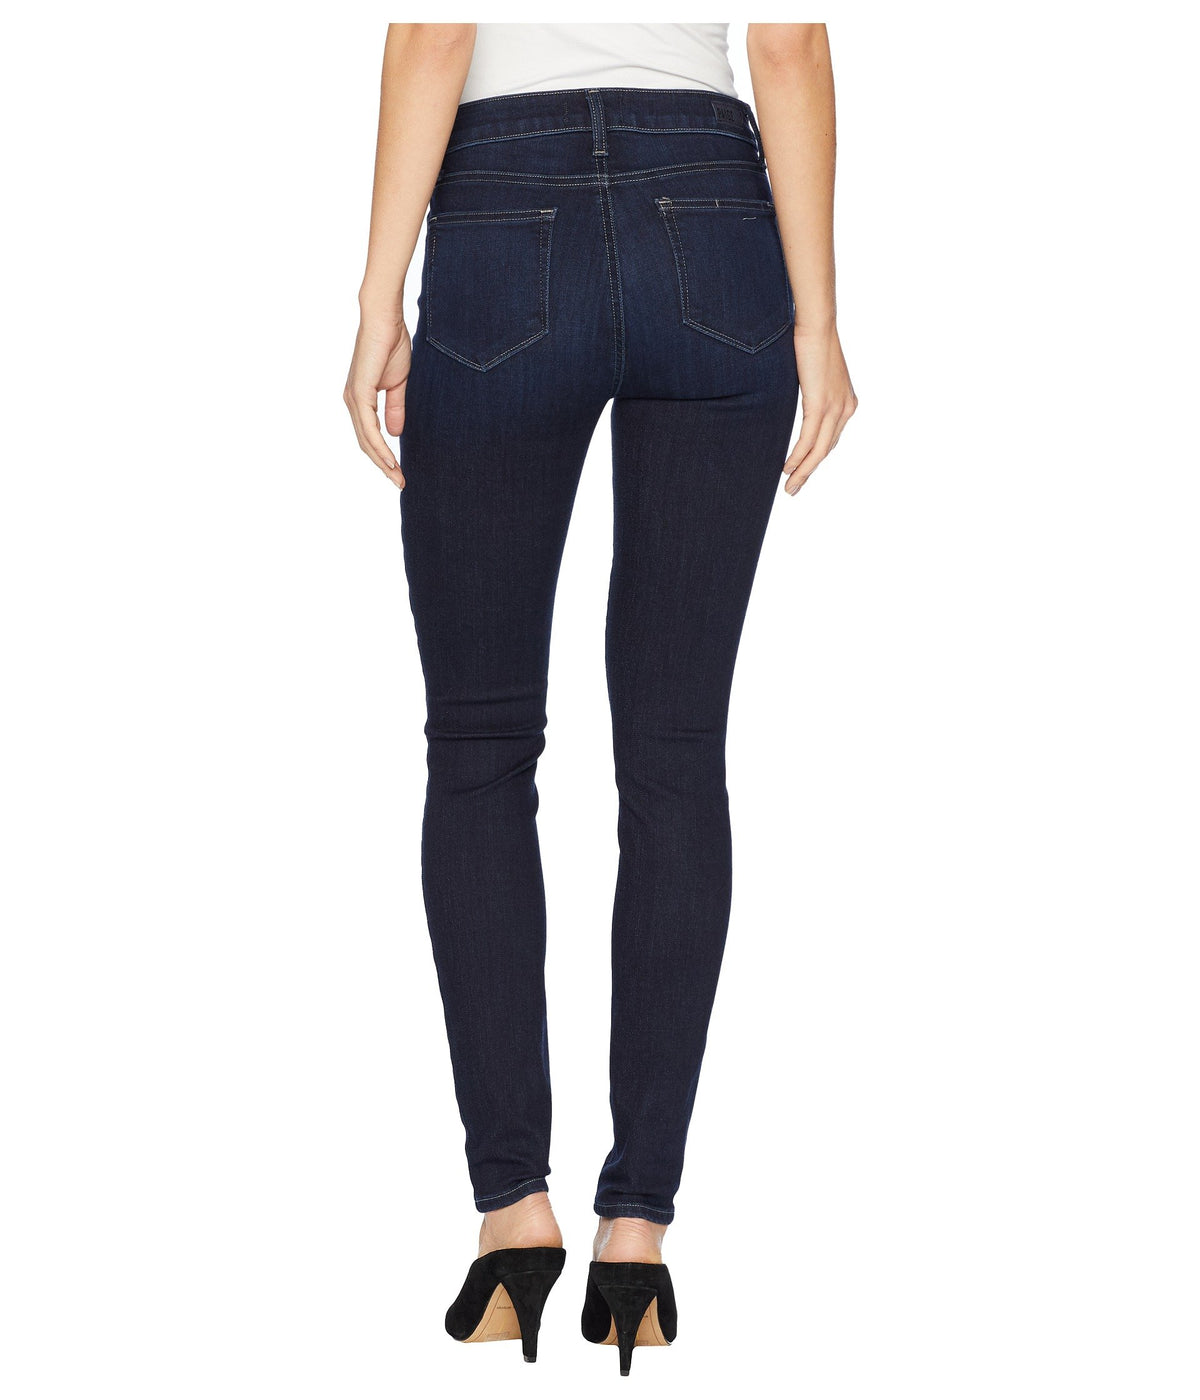 Hoxton Ultra Skinny Jeans in Daly